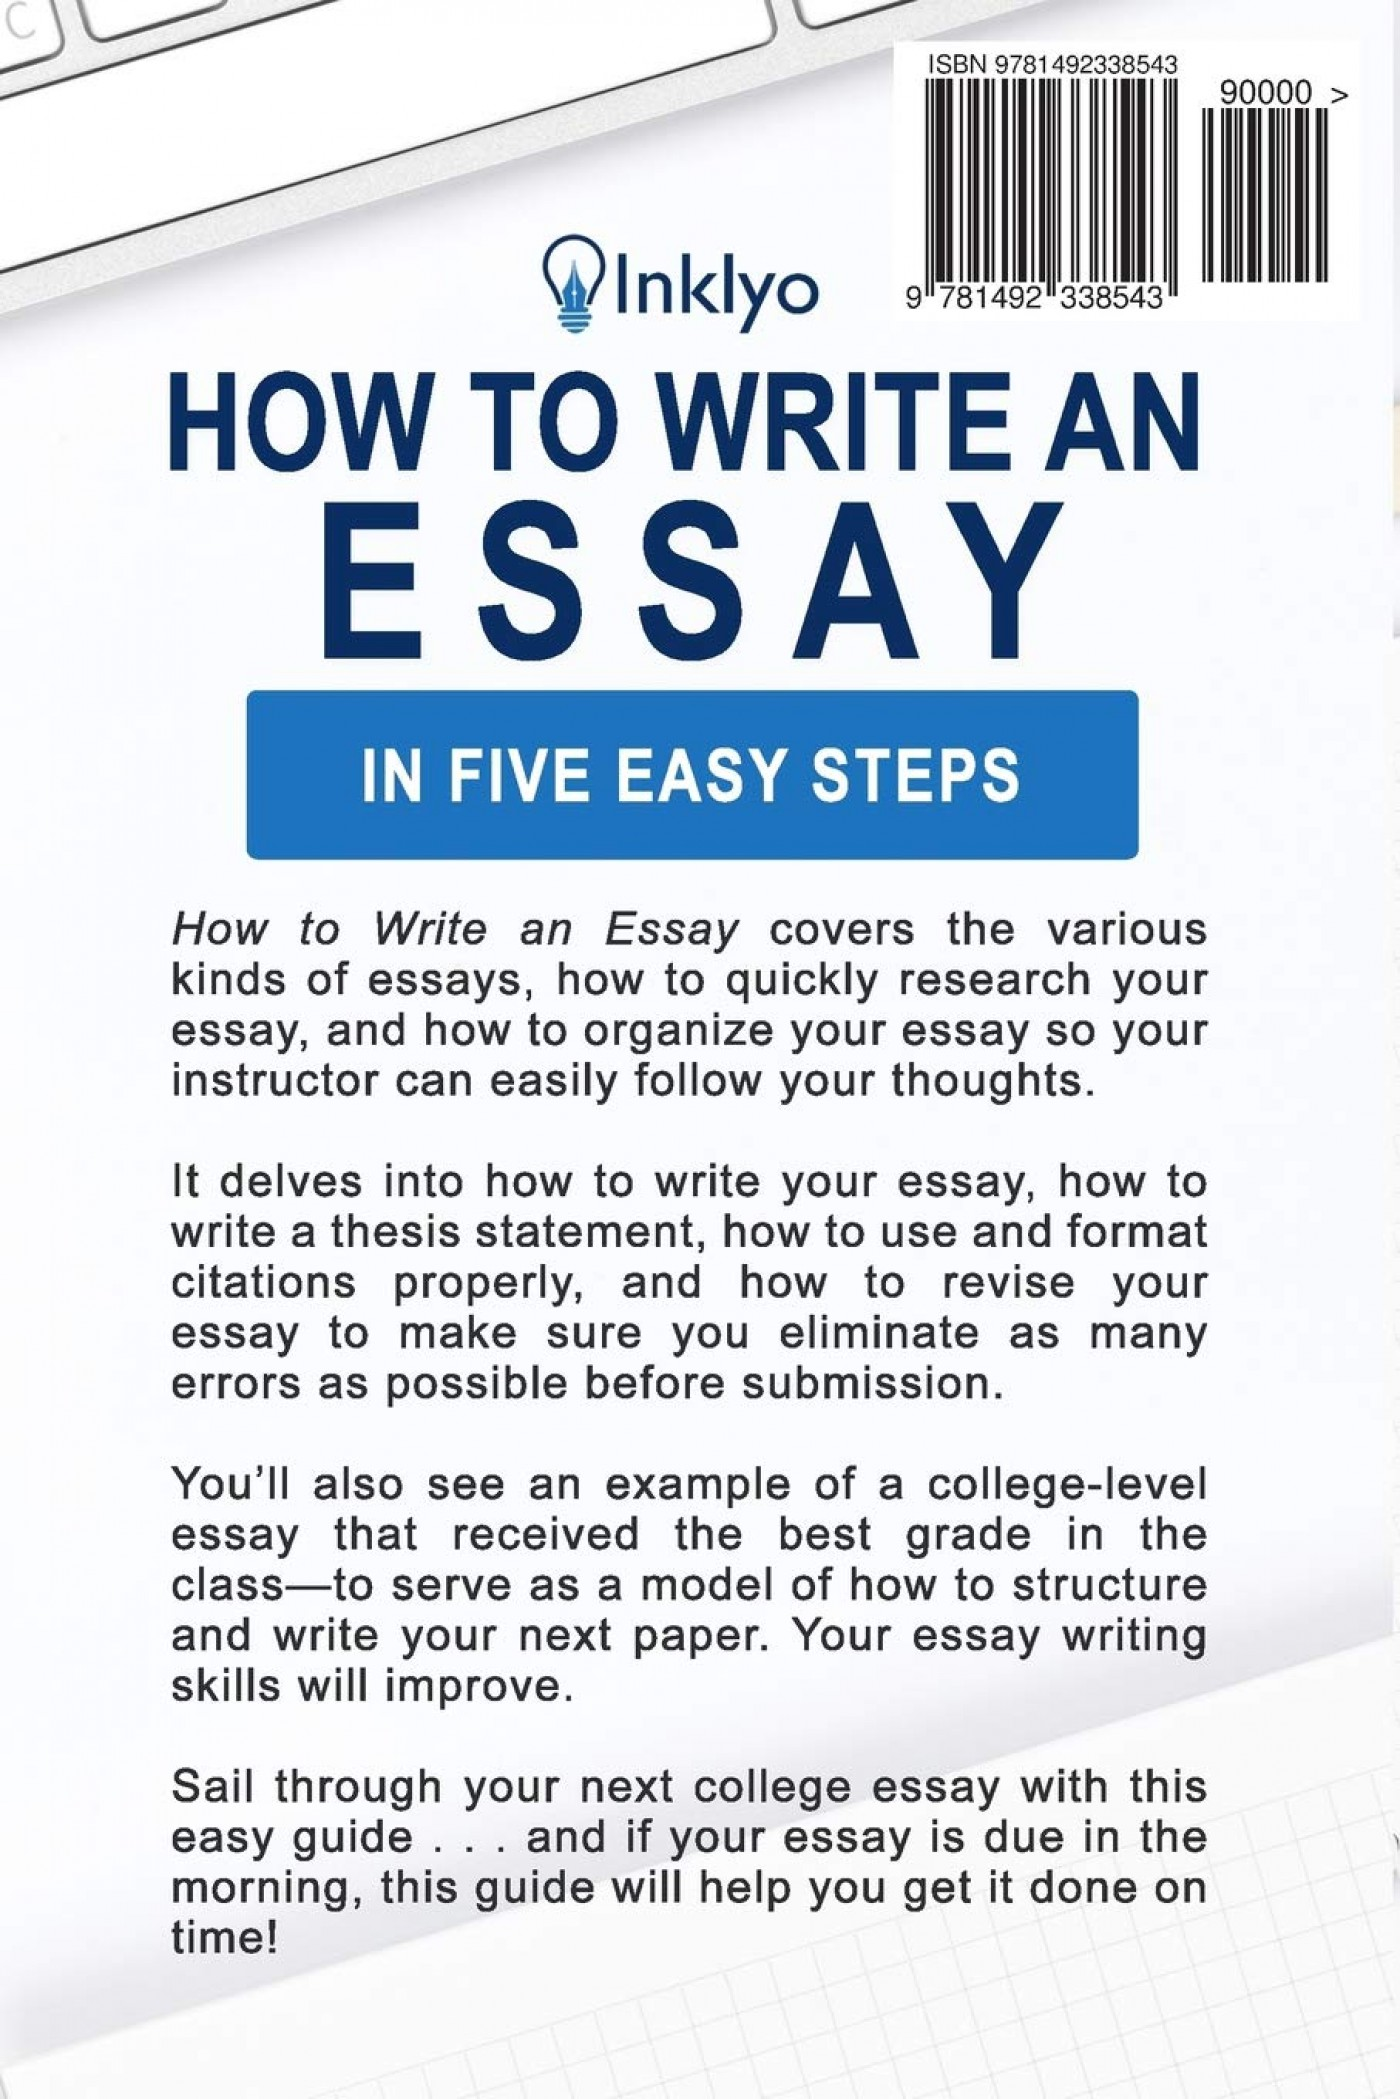 003 How To Write Essay Example Archaicawful A In College Level Business Narrative Outline 1400